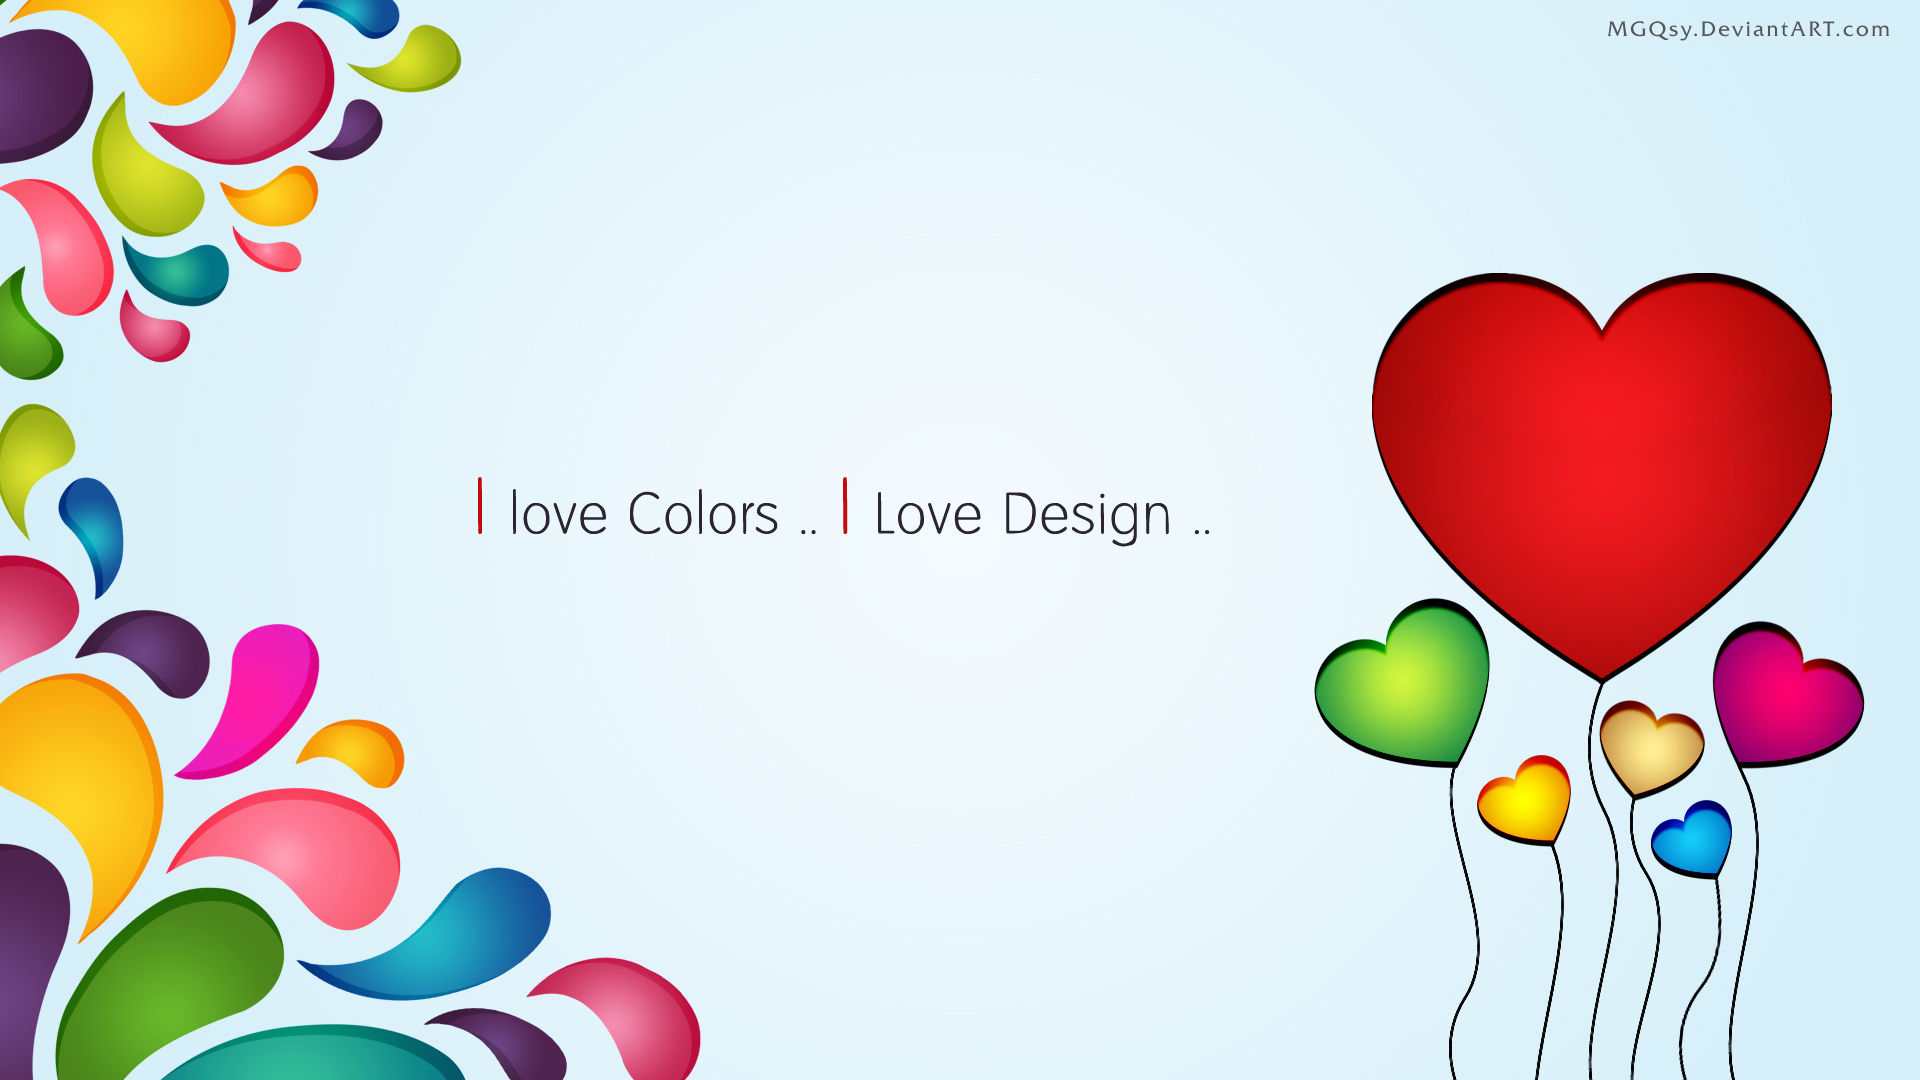 colorful cartoon Love Wallpaper : MGQsy s DeviantArt Gallery